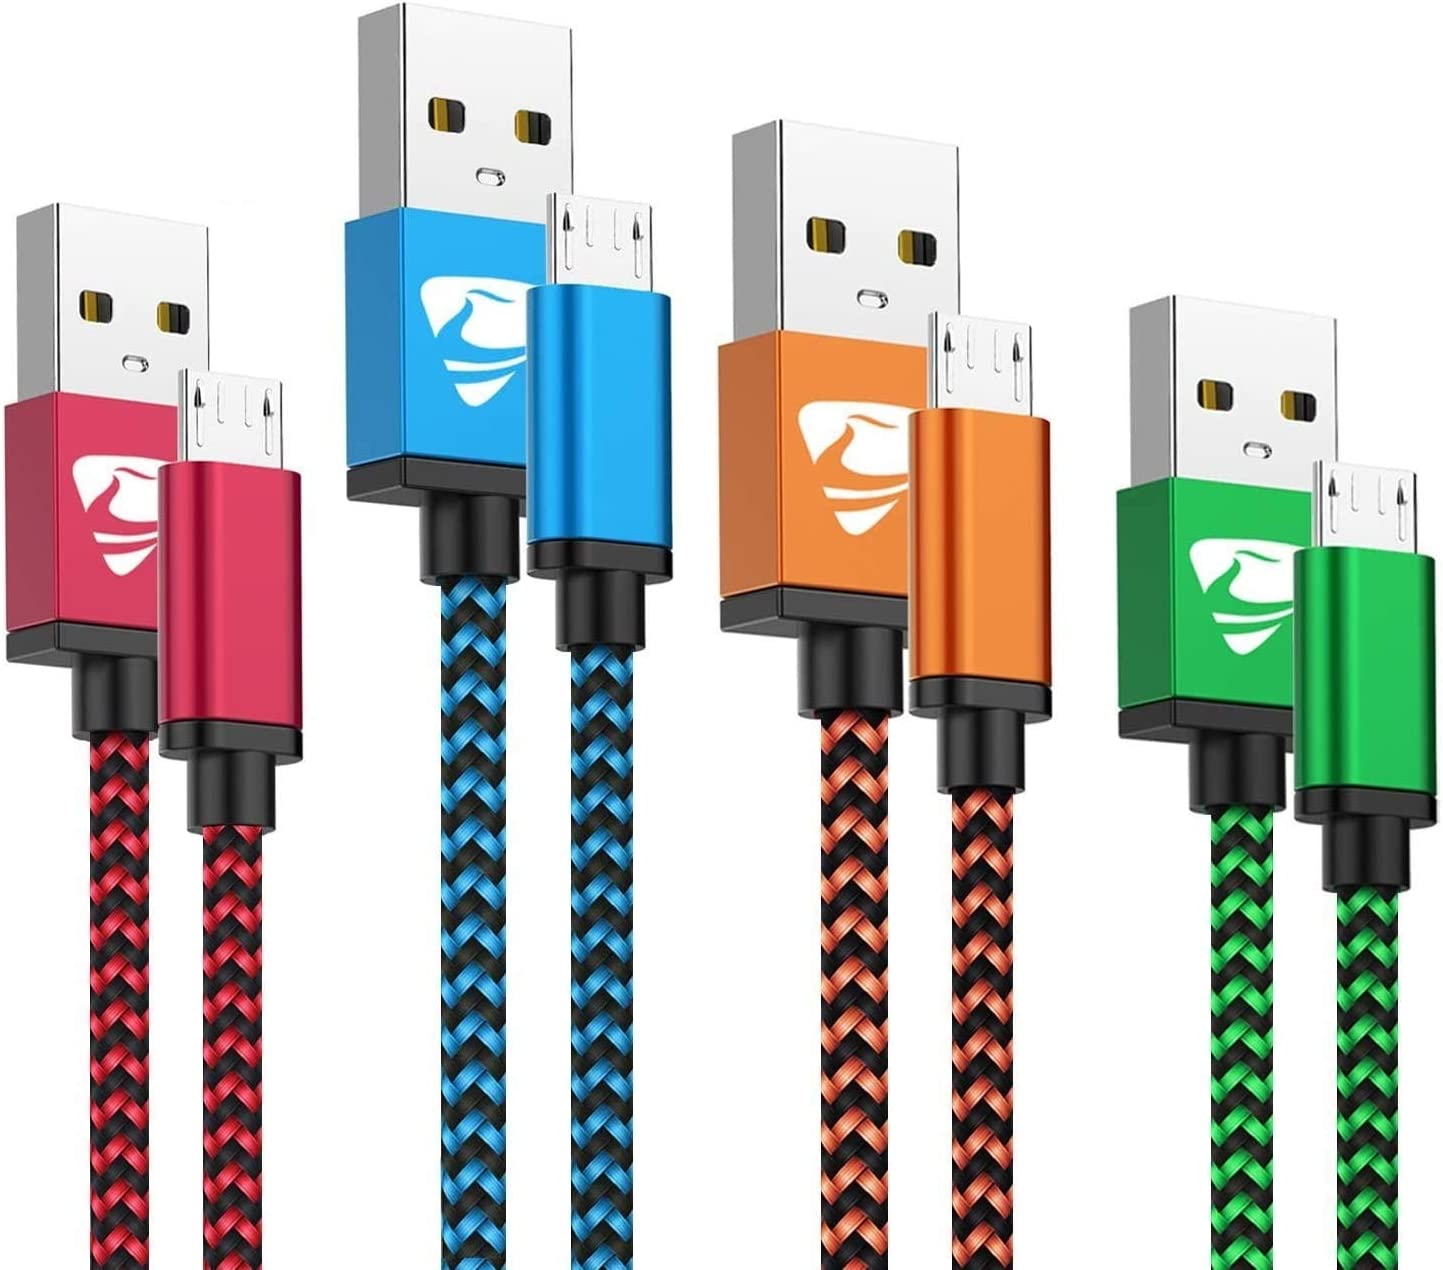 Micro USB Cable 2x2x0.8 Turquoise Gemstone Buzz 3-in-1 Retractable USB Cable Type C Sync Fast Charging Cord for All Phone Tablets Mini Square